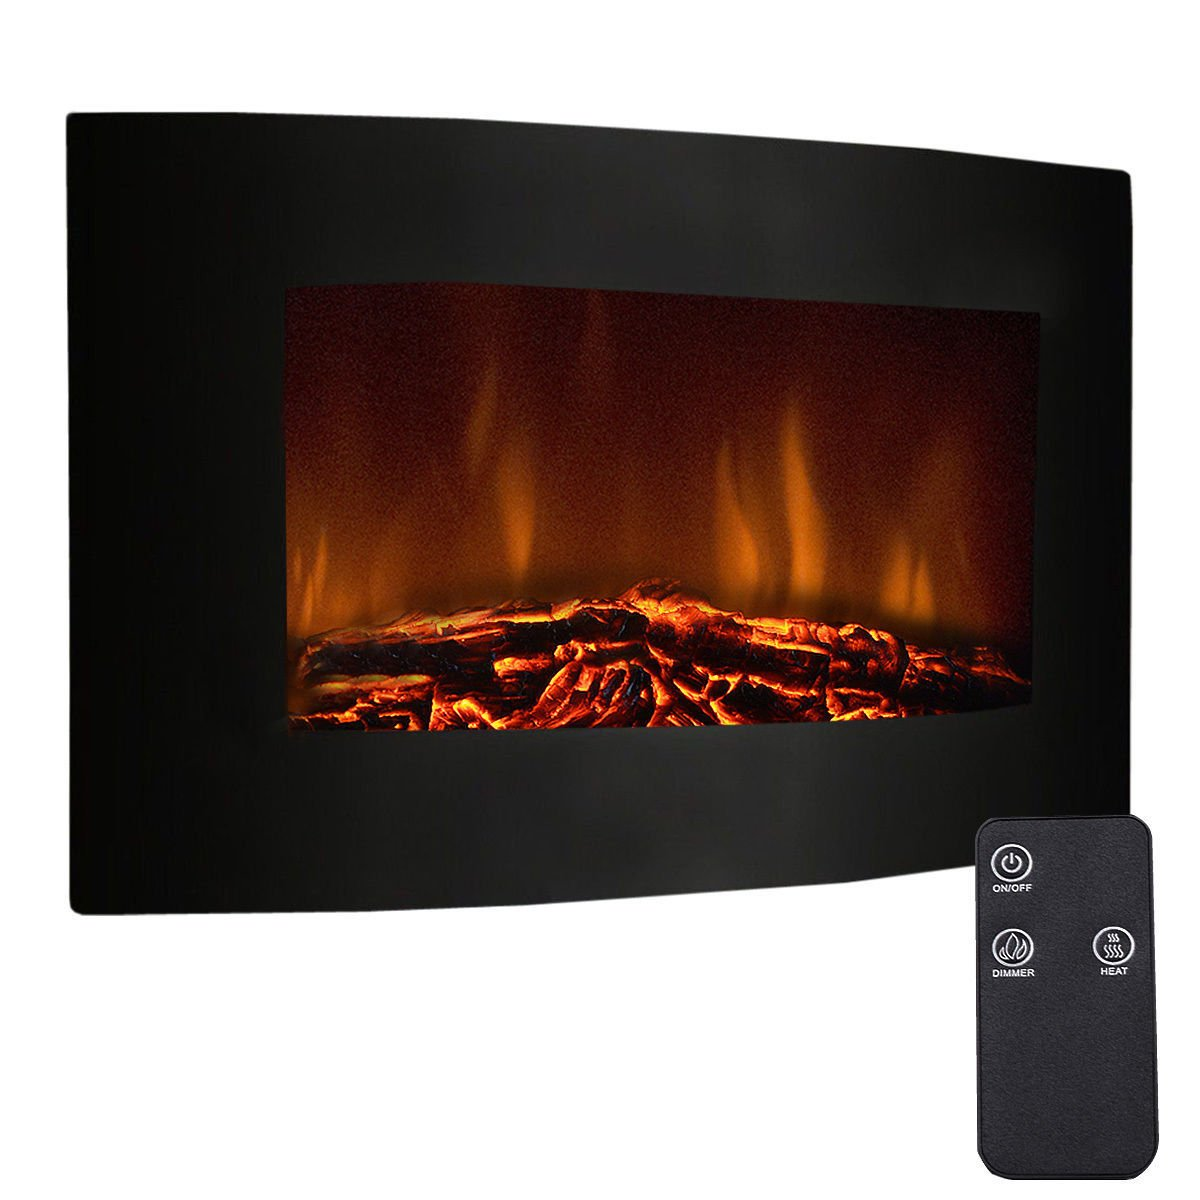 Tangkula 35'' Recessed Electric Fireplace, Adjustable Electric Wall Mount Fireplace Heater with Remote Control, 750W-1500W, Black by Tangkula